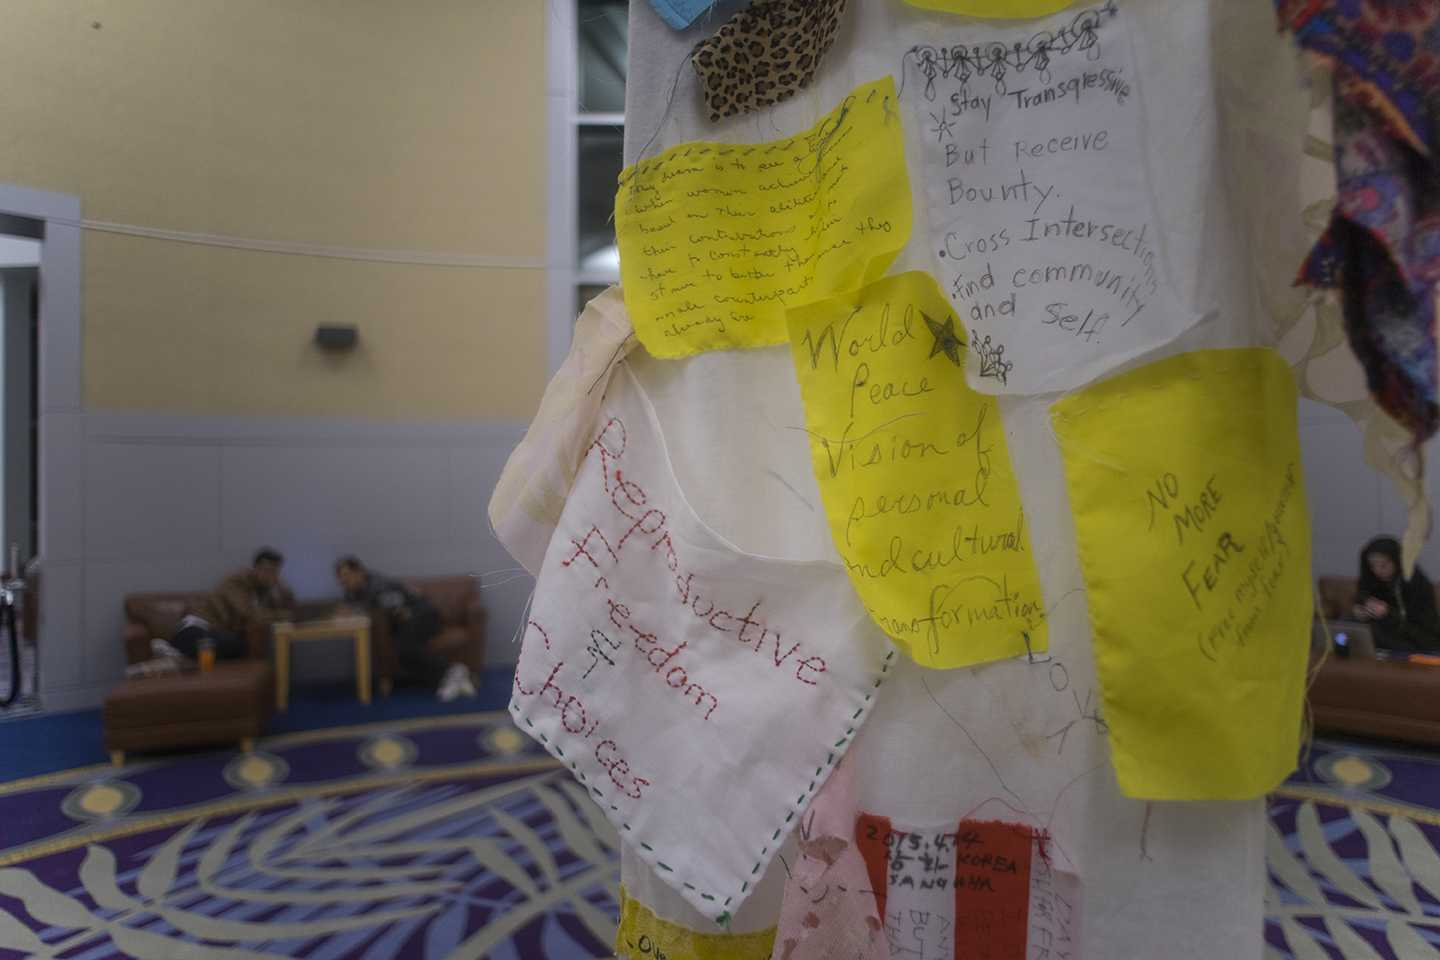 """A scroll adorned with handwritten notes hangs Monday, March 6, 2017, in the Morris Library rotunda. The """"Dreaming Diversity and Art Display"""" is a three-week interactive installation. (Branda Mitchell 